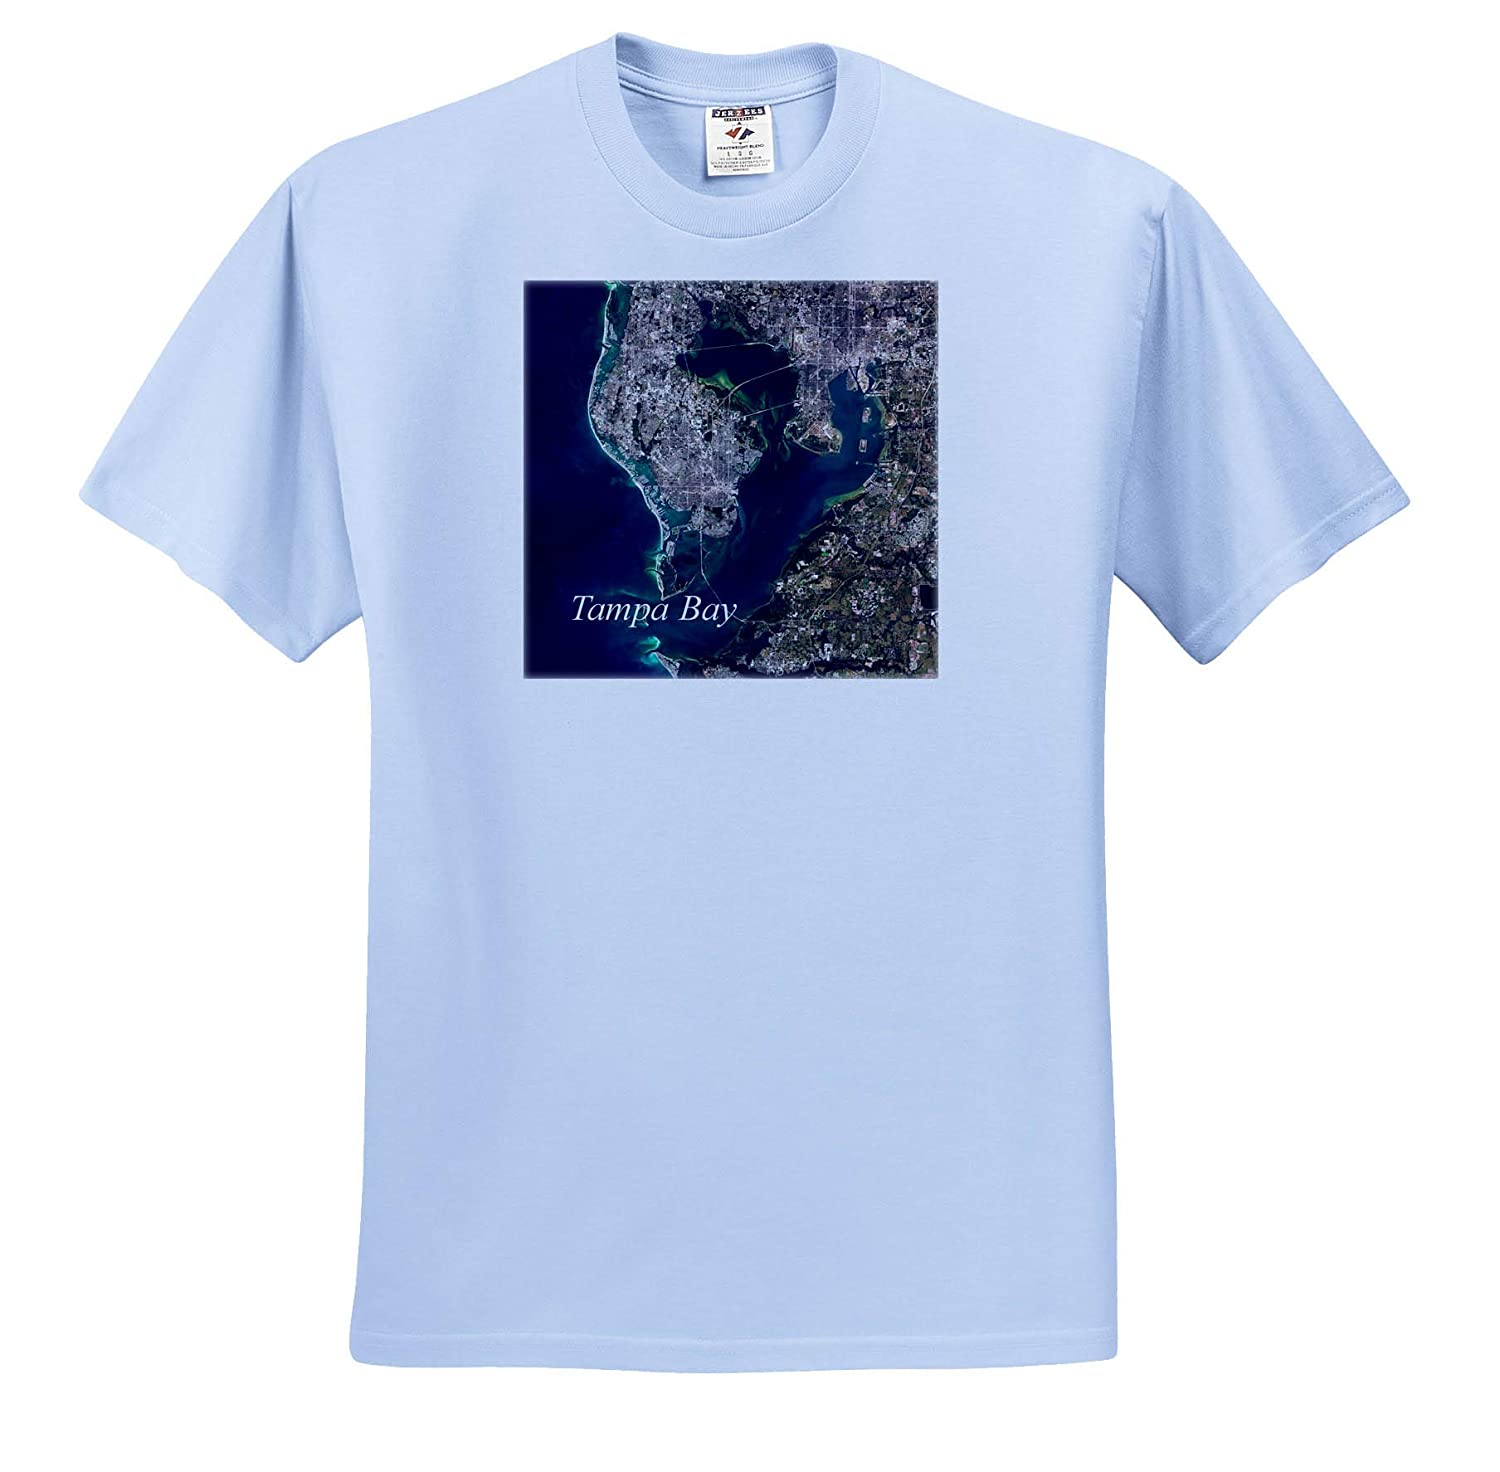 ts/_317556 3dRose Lens Art by Florene Nautical Maps Adult T-Shirt XL Image of Tampa Bay Florida Aerial Map